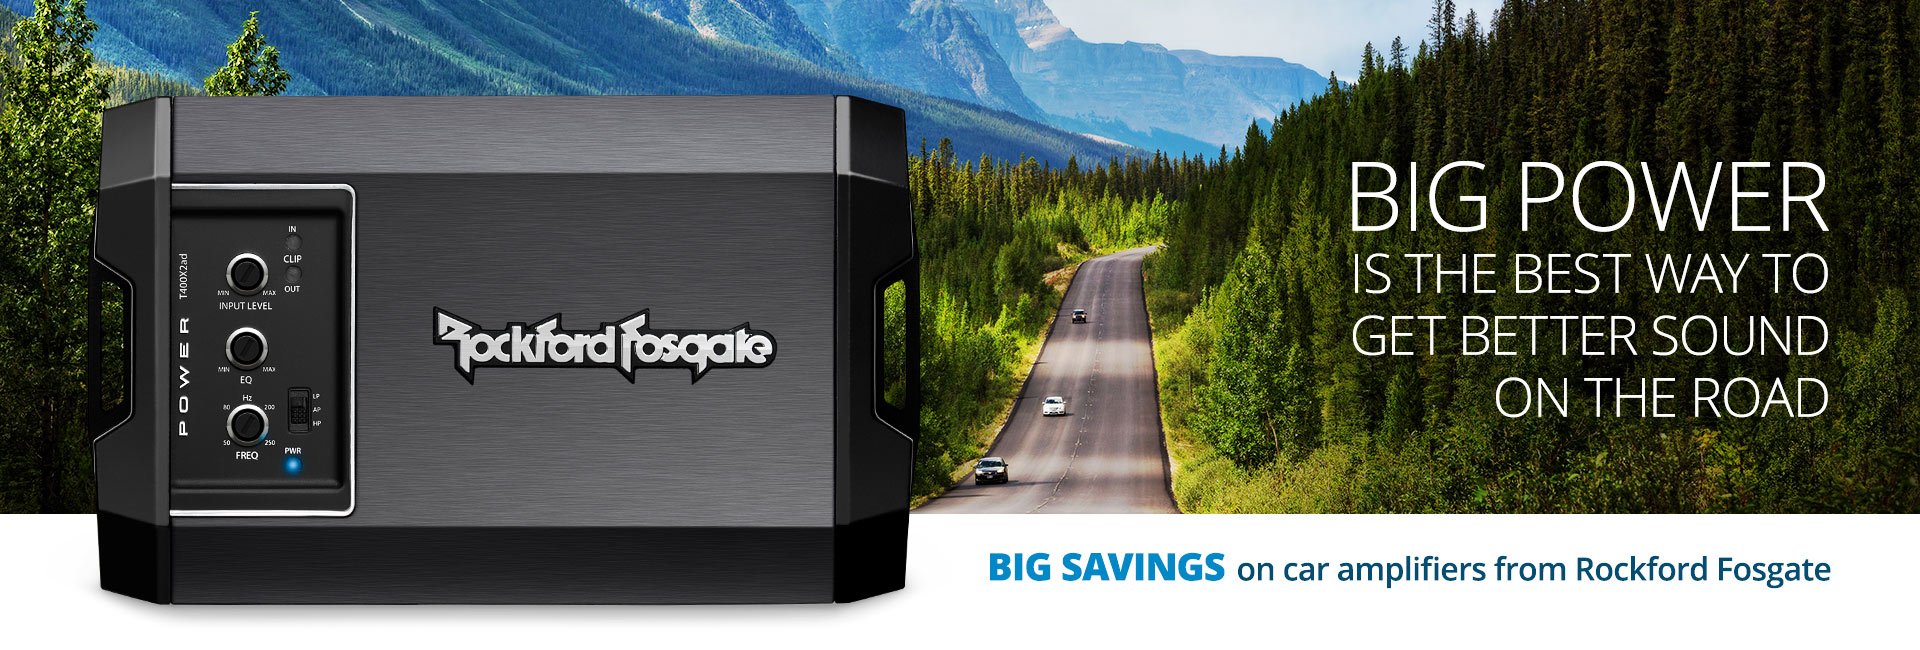 Big savings on car amplifiers from Rockford Fosgate